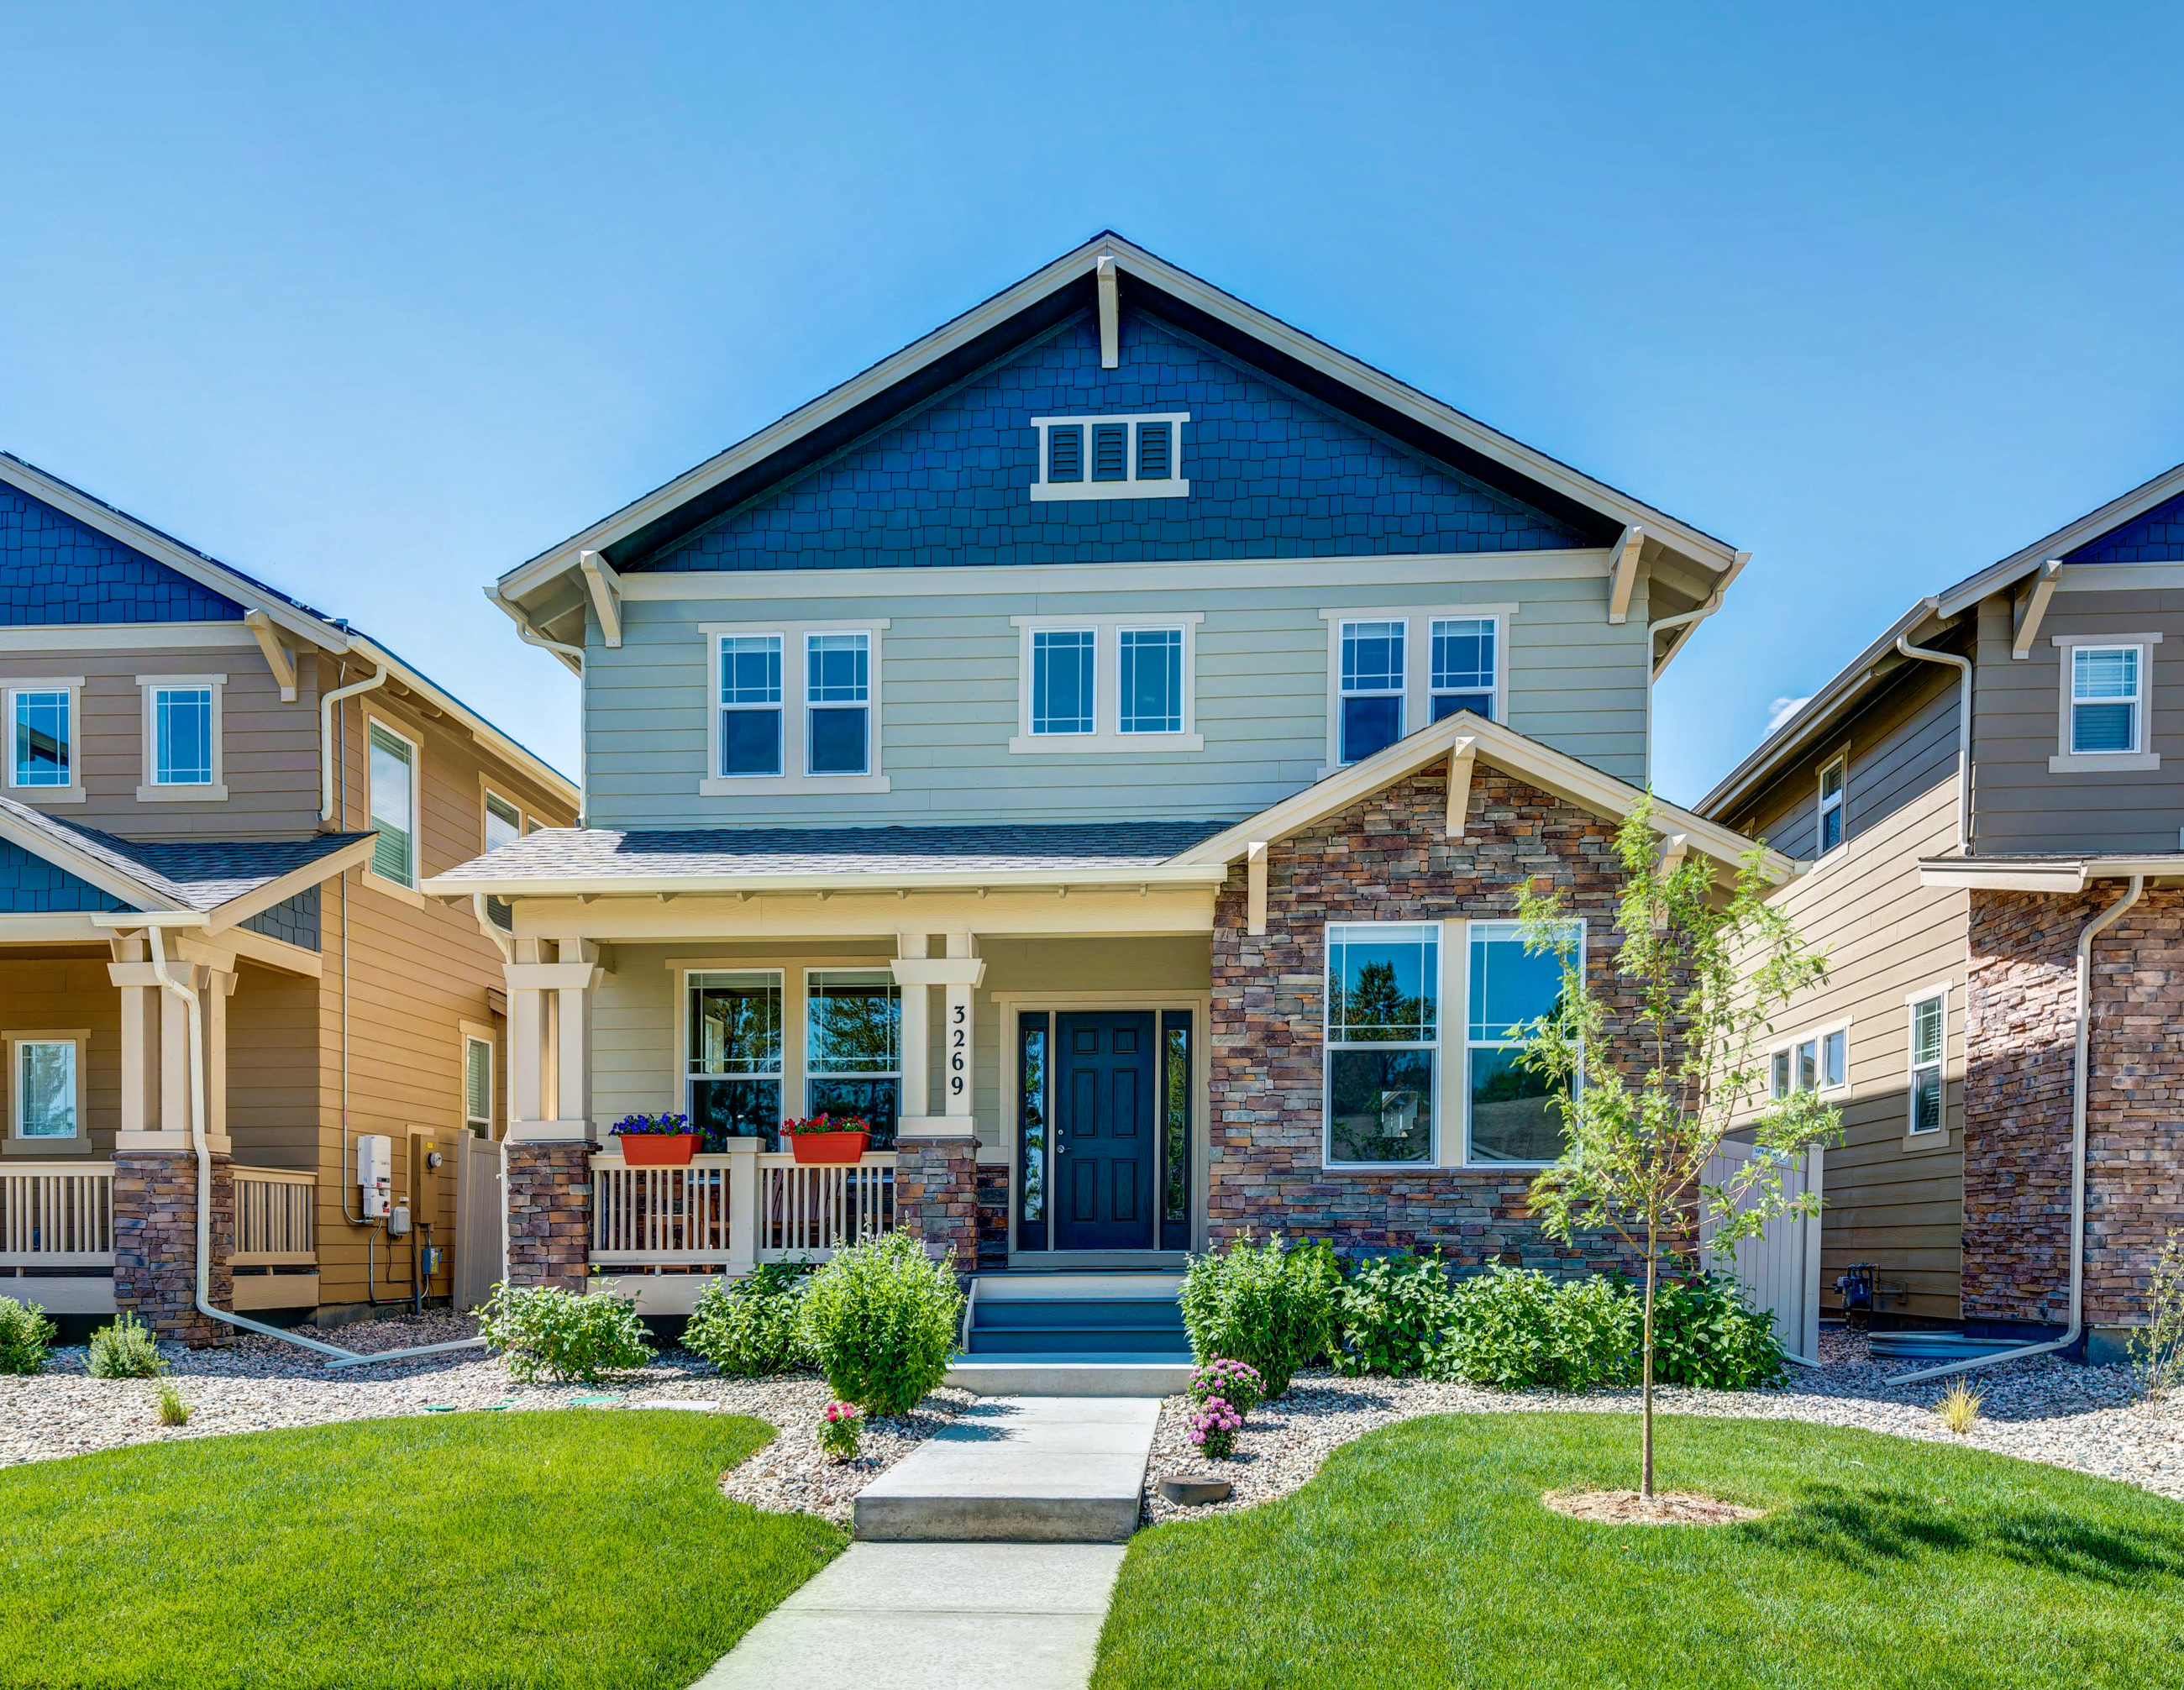 New Homes For Sale In Fort Collins Co